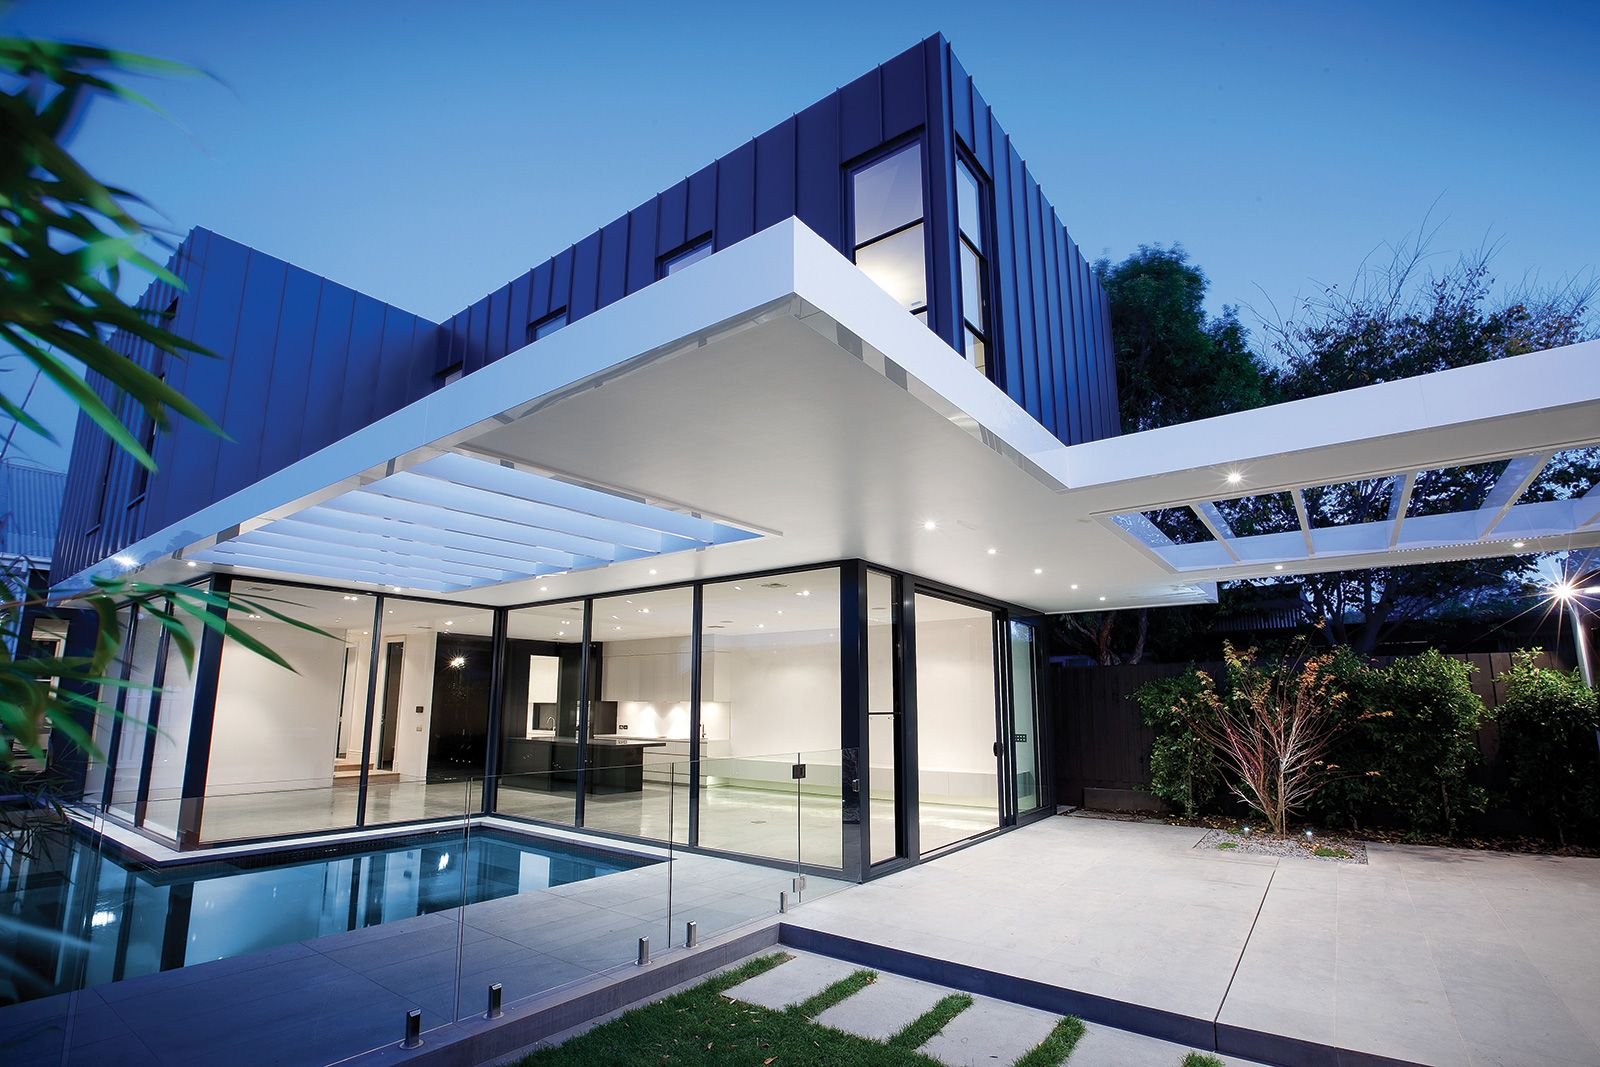 Canny Renovations In Kew | Expert Home Renovations | Custom House  Extensions | Contemporary Melbourne Home Builders Of Luxury Display Homes  In Melbourne ...